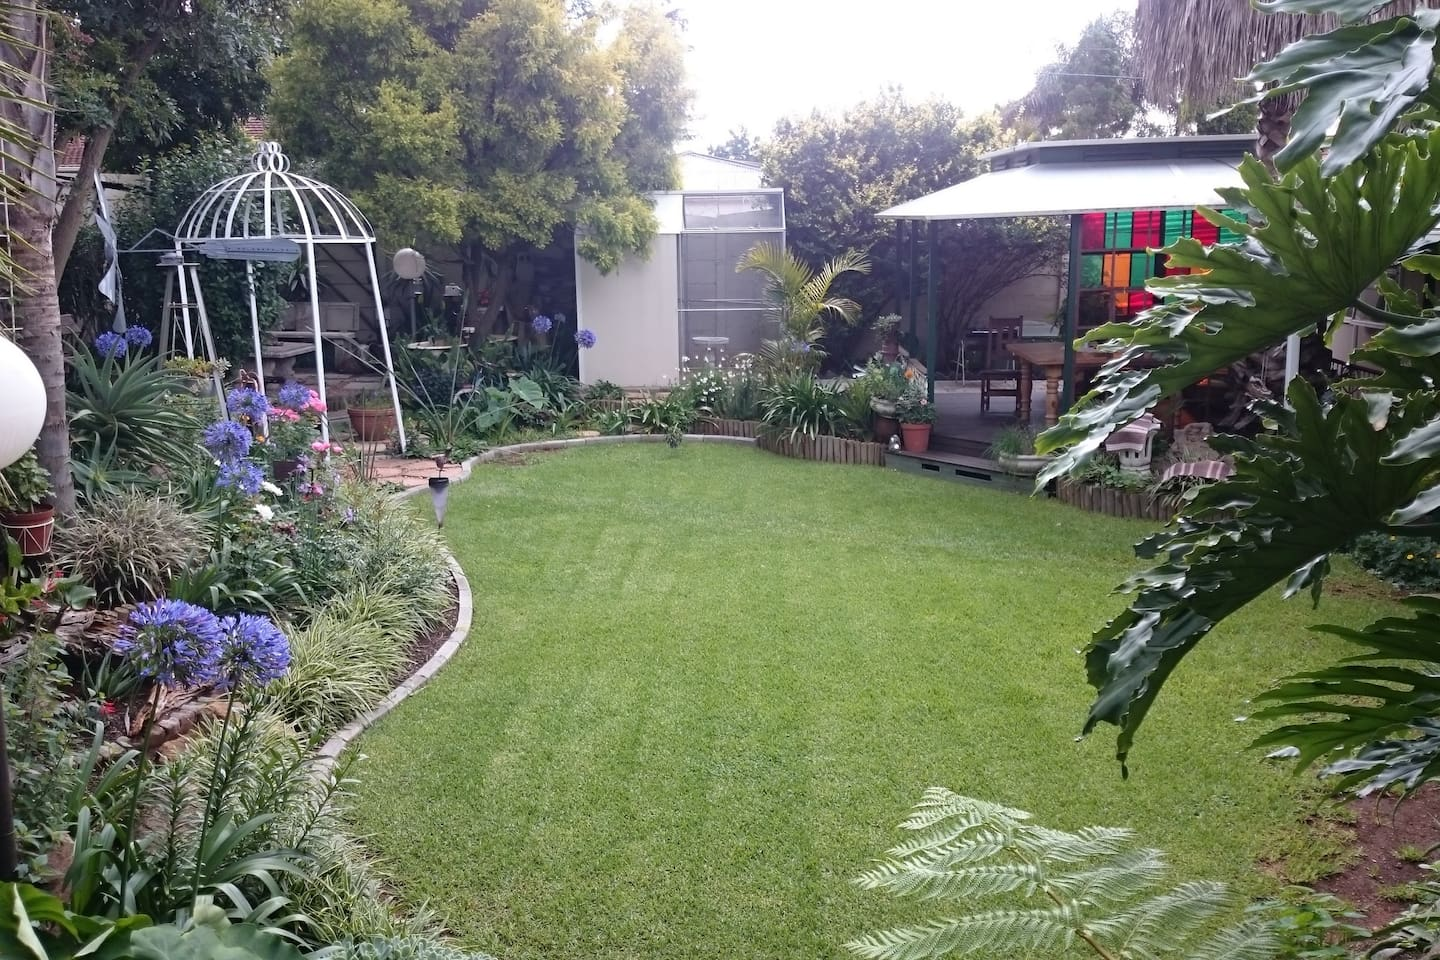 Relax and enjoy our garden with its many surprises